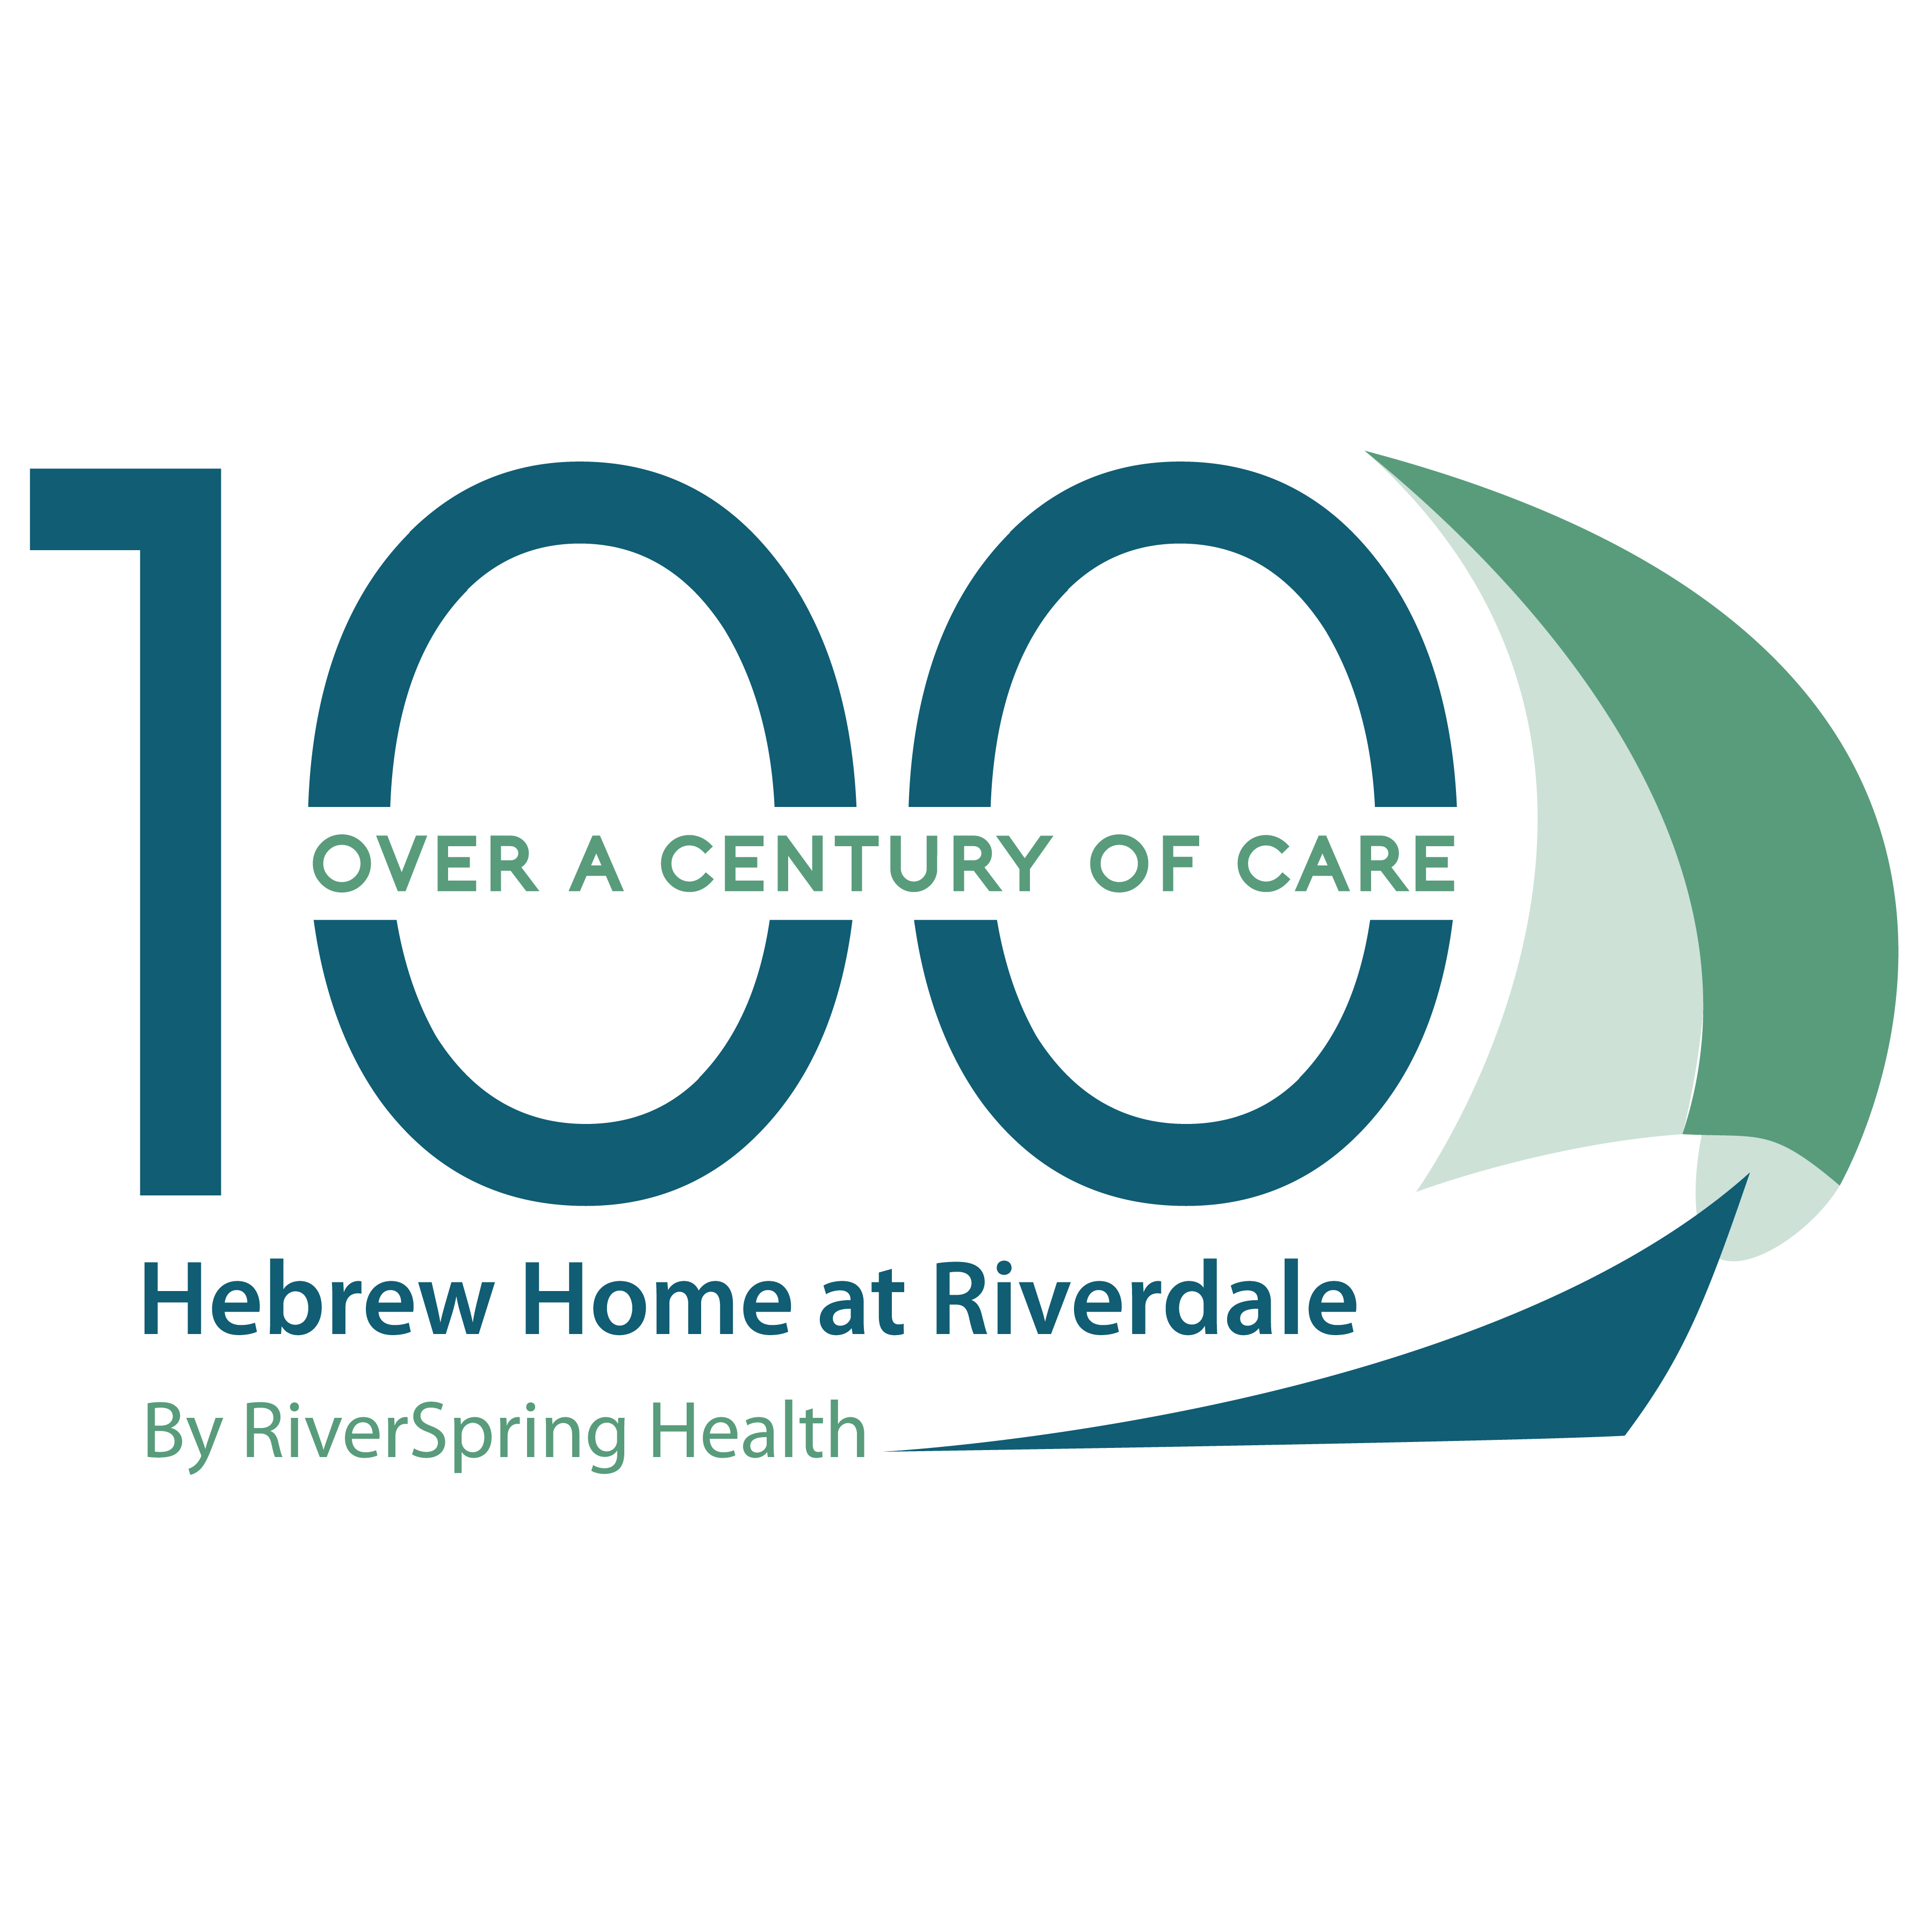 The Hebrew Home at Riverdale by RiverSpring Health